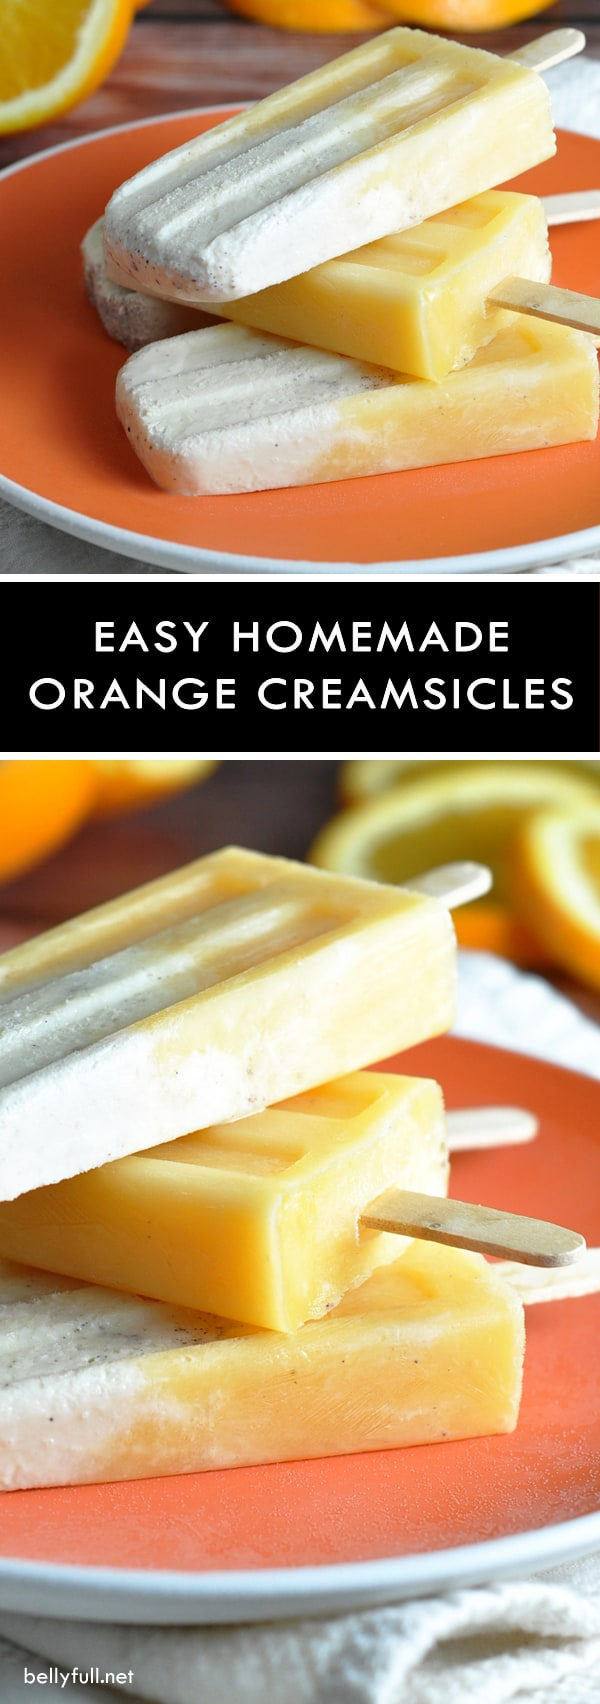 Homemade Orange Creamsicles Popsicles